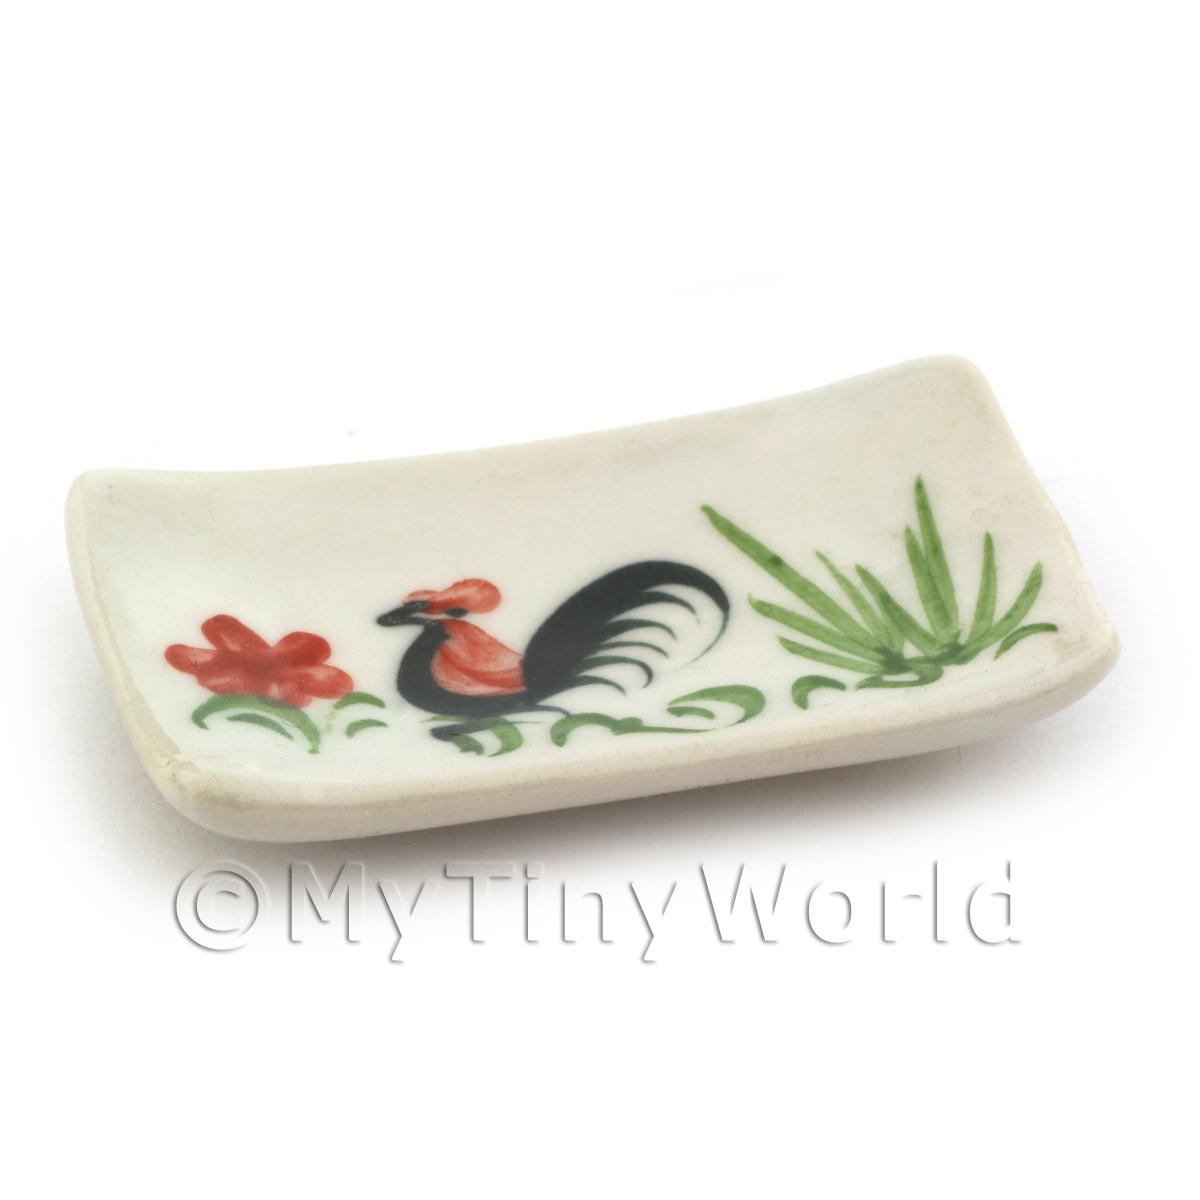 Dolls House Miniature 28mm x 49mm White Ceramic Cockerel Plate